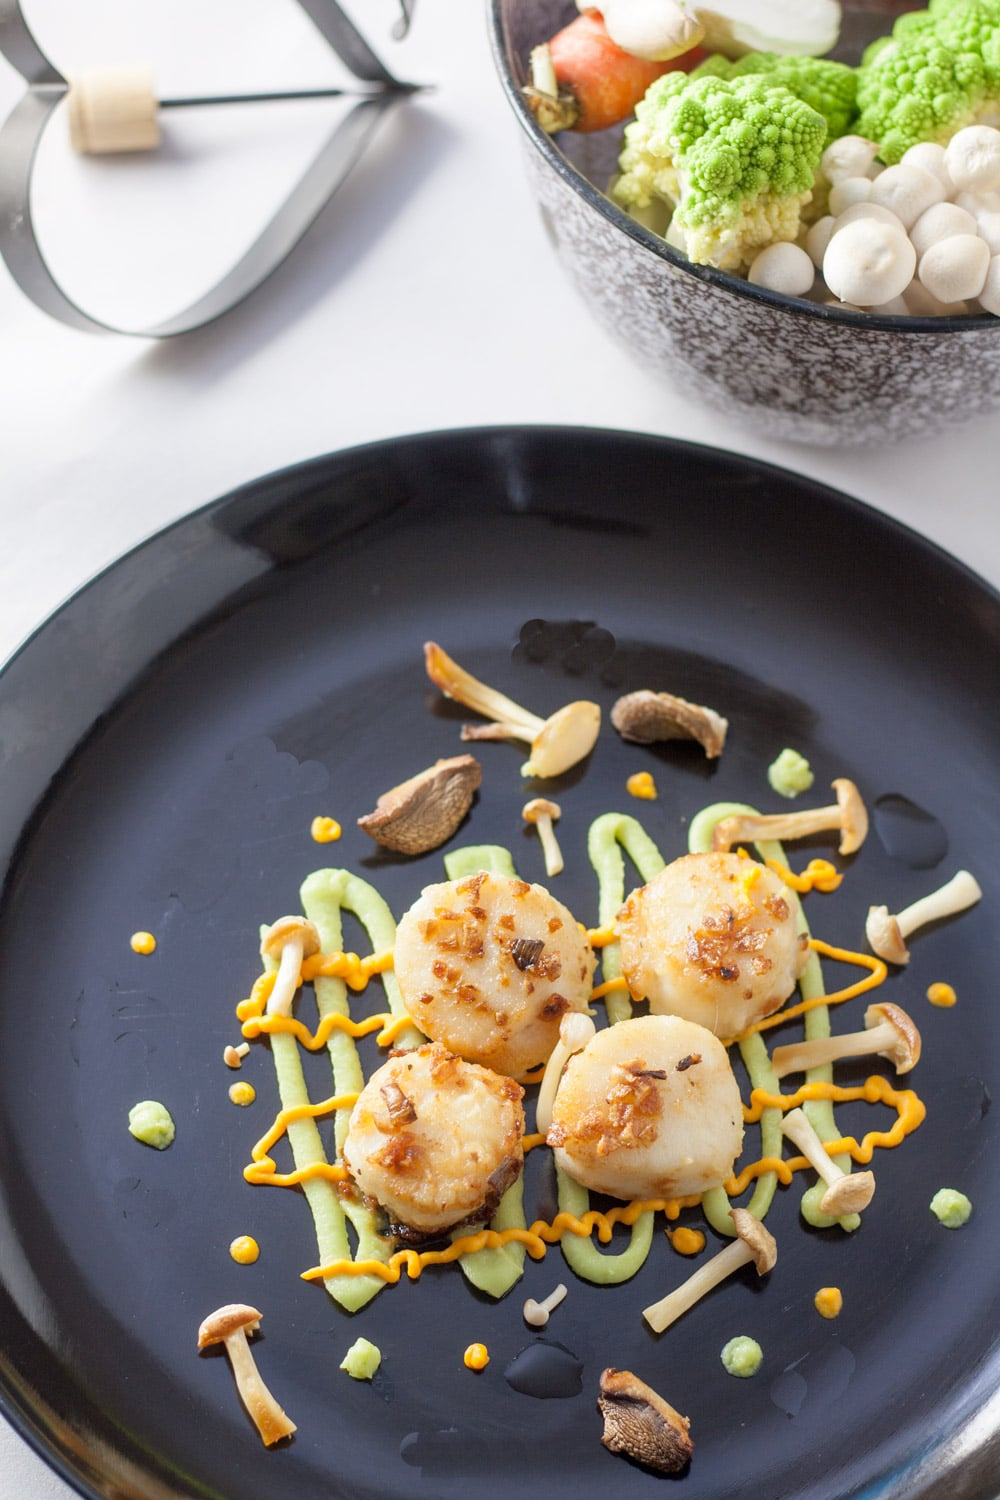 garlic sea scallops on black plate with romanesco and carrot purees